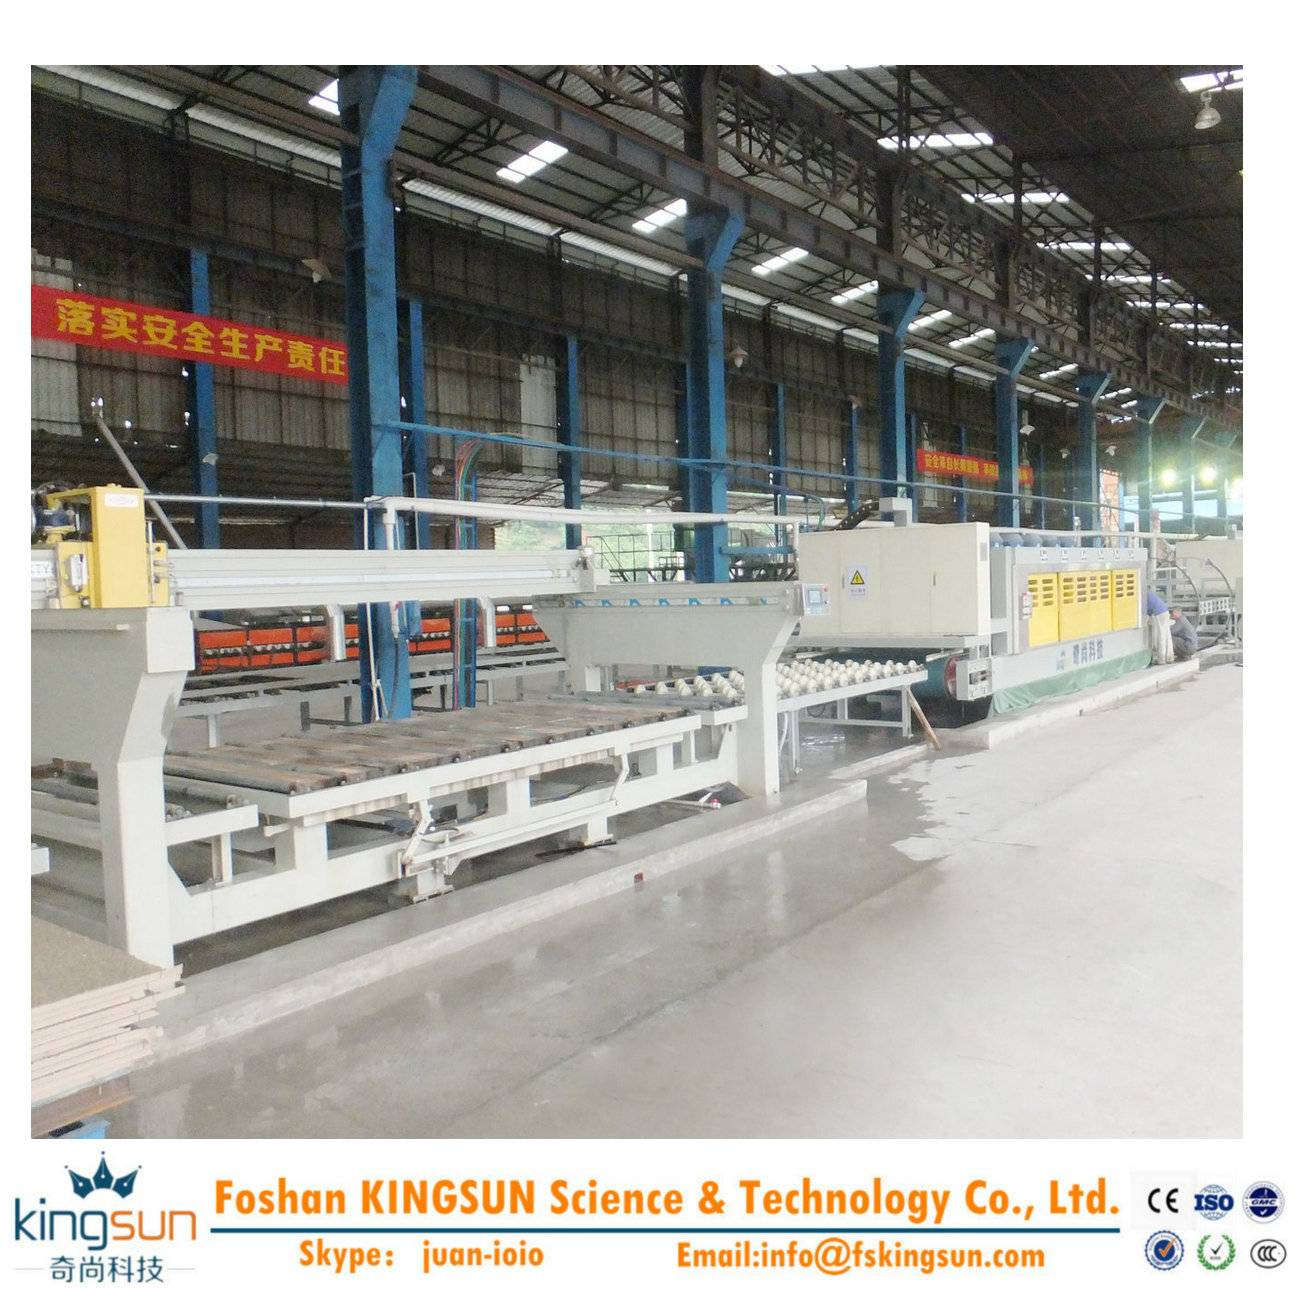 quartz stone cutting machine/artificial stone slab cutter